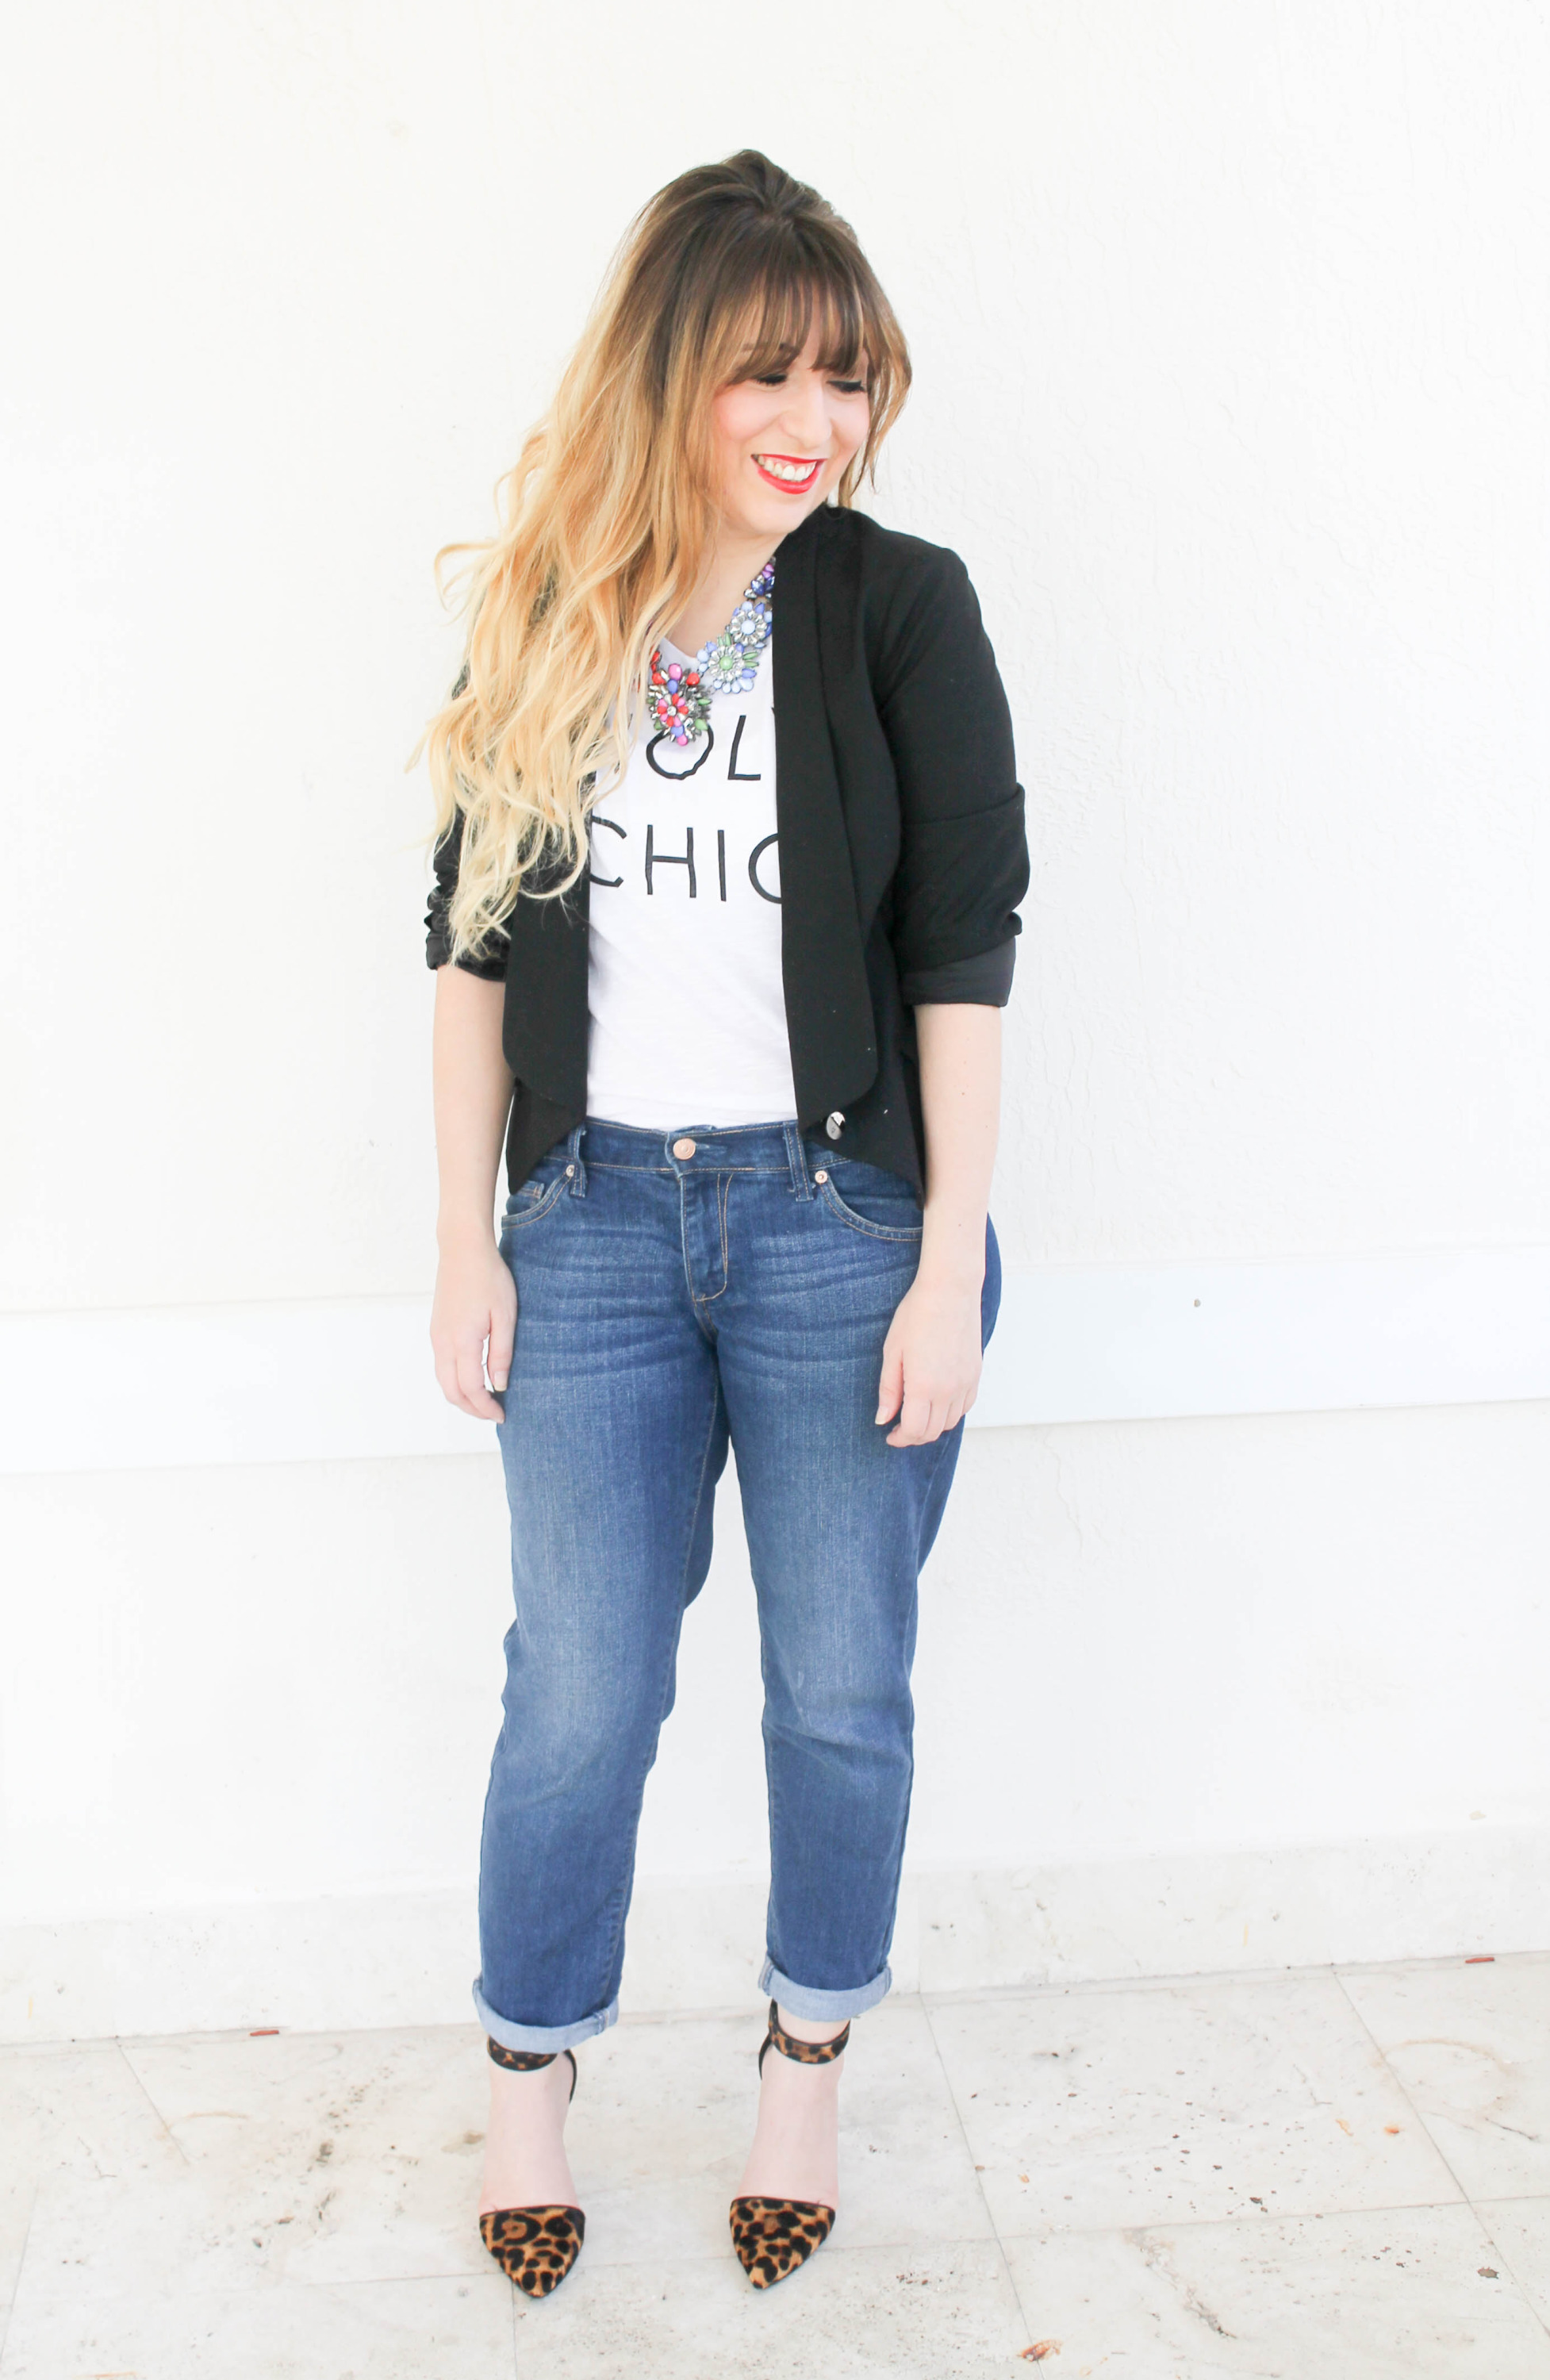 old navy holy chic tee, old navy boyfriend jeans, nine west cate heels, target statement necklace, how to style a graphic tee, graphic tee and jeans